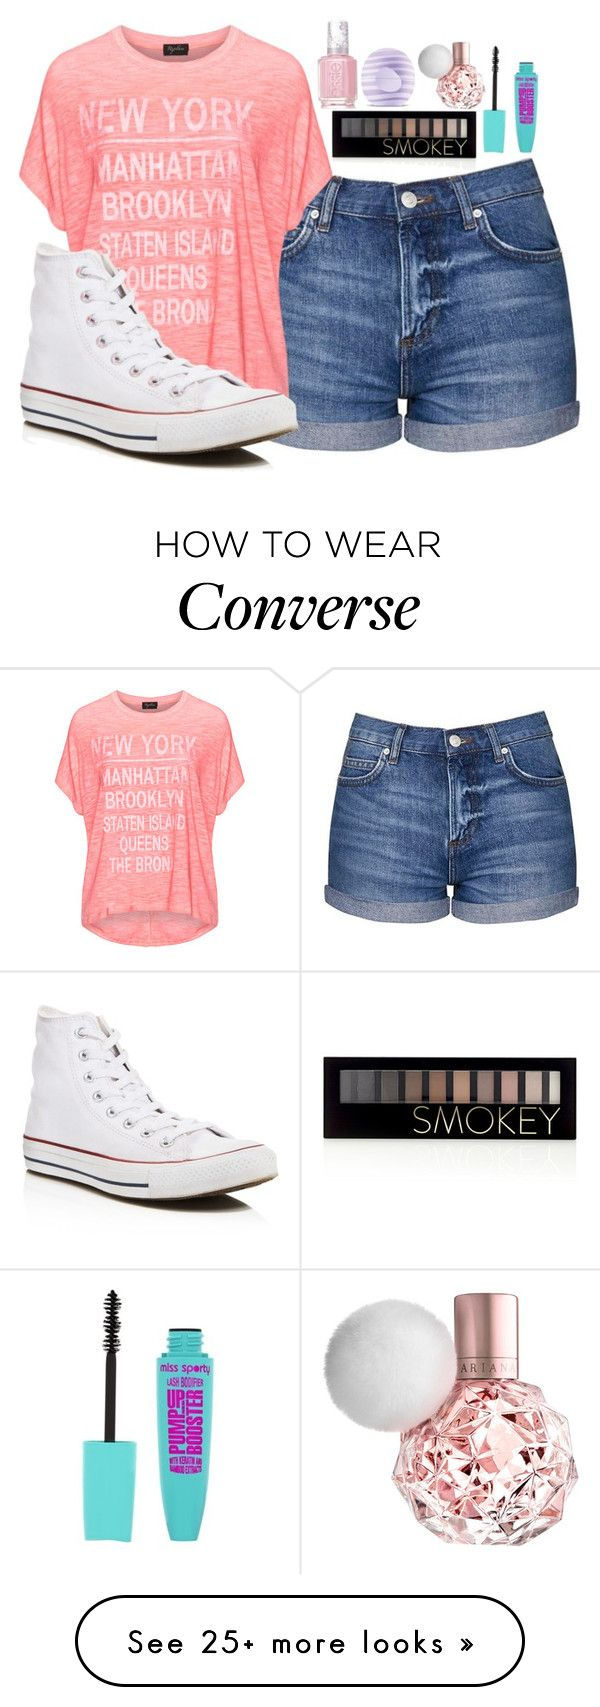 """""""Simple Outfit"""" by alove1812 on Polyvore featuring Topshop, Replace, Converse, Forever 21, Eos, Essie and AubreysCuteSets"""